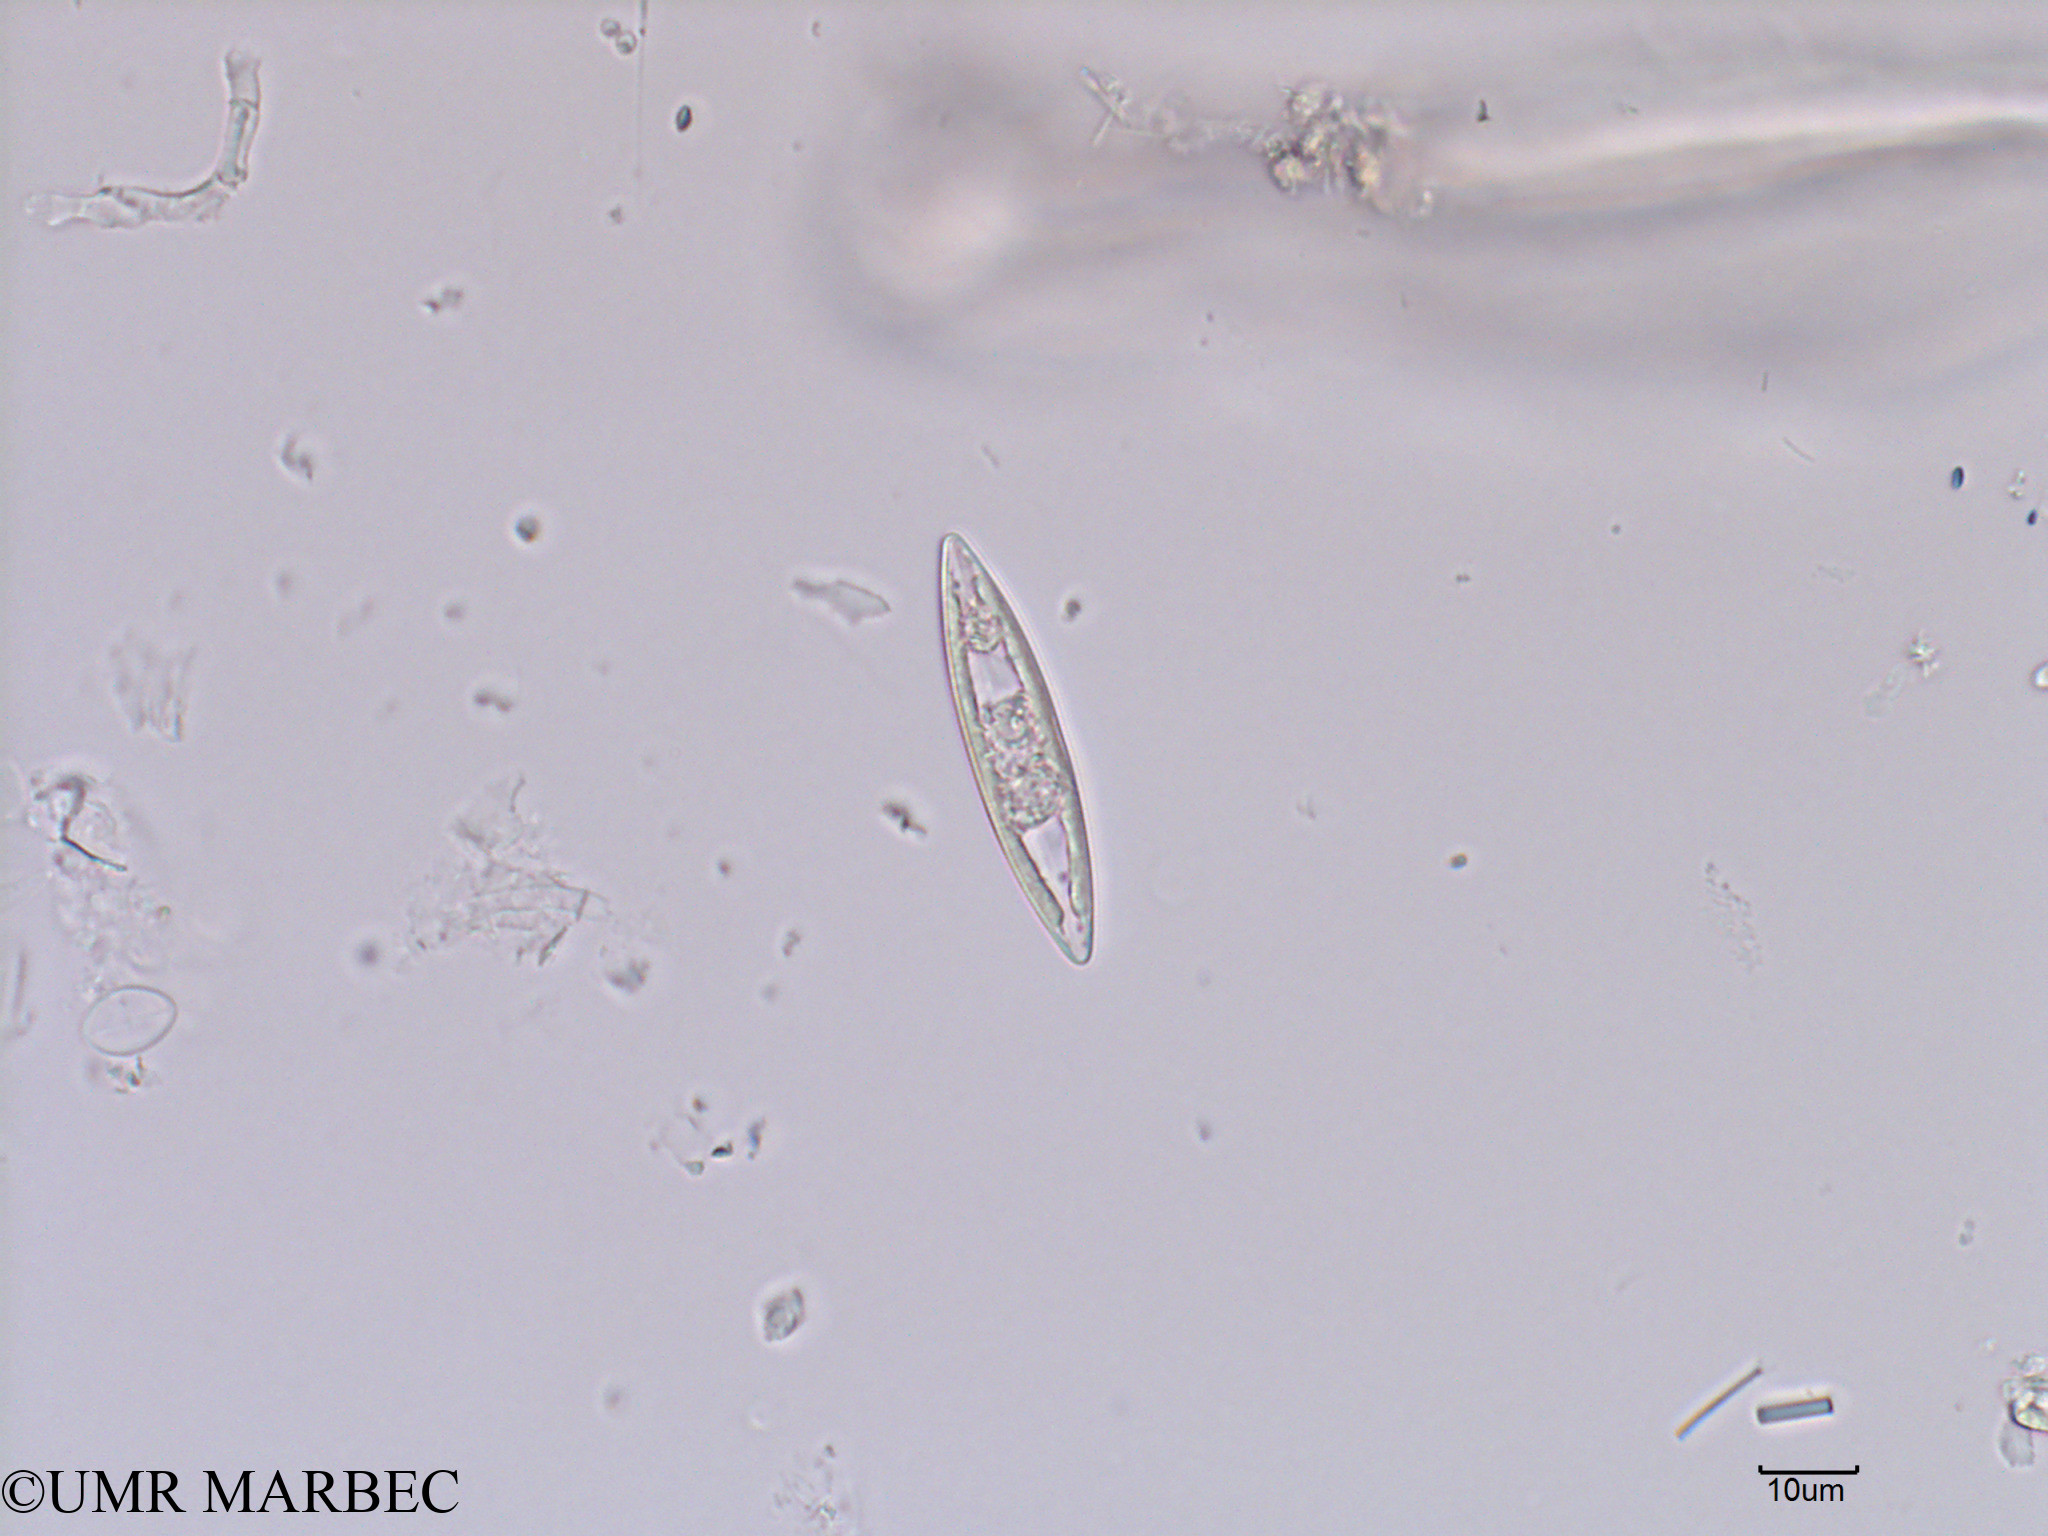 phyto/Scattered_Islands/iles_glorieuses/SIREME May 2016/Navicula sp2 (old Pennée spp 5-10x50-100µm -SIREME-Glorieuses2016-GLO5surf-191016-Pennée spp 5-10x50-100µm-10 -8)(copy).jpg